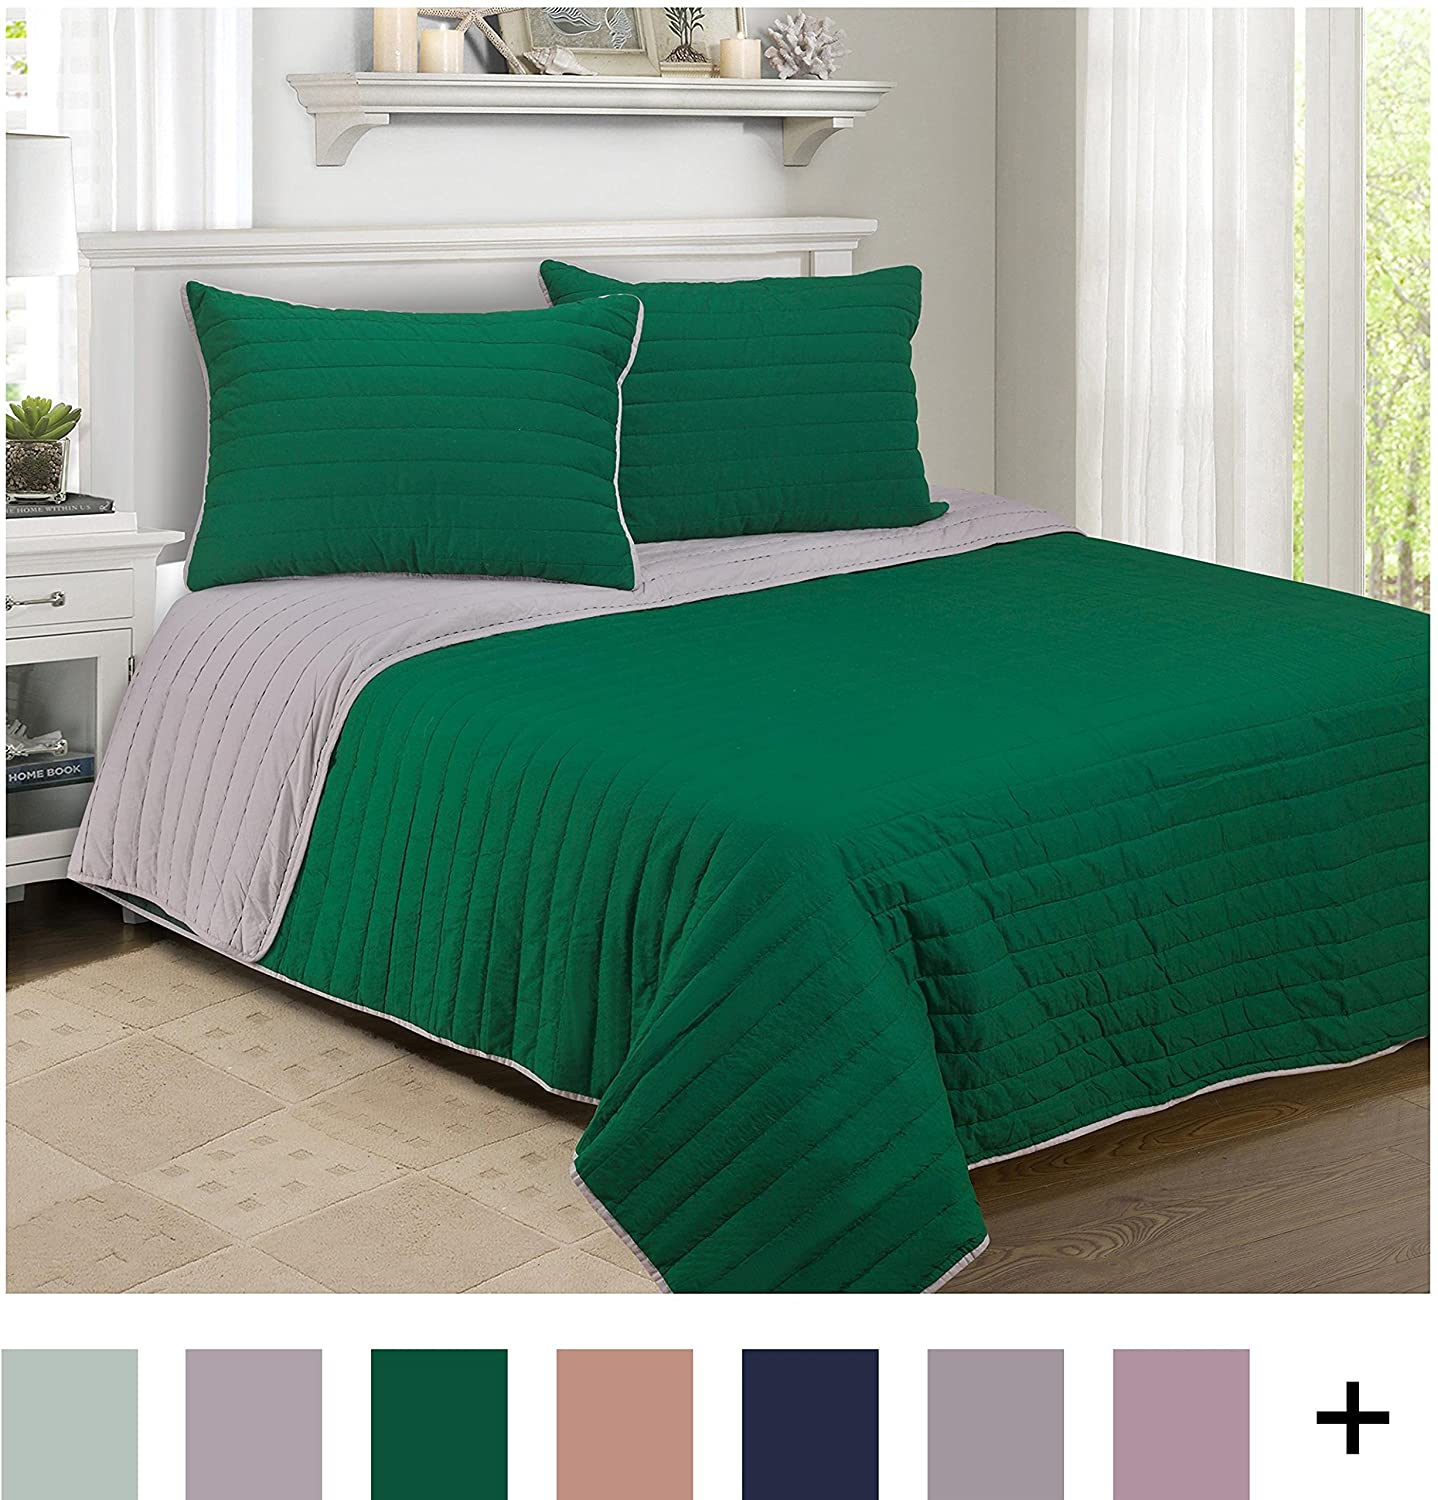 Superior 100% Cotton, Soft, Twin, Brandon Striped Quilt Set, Hunter Green